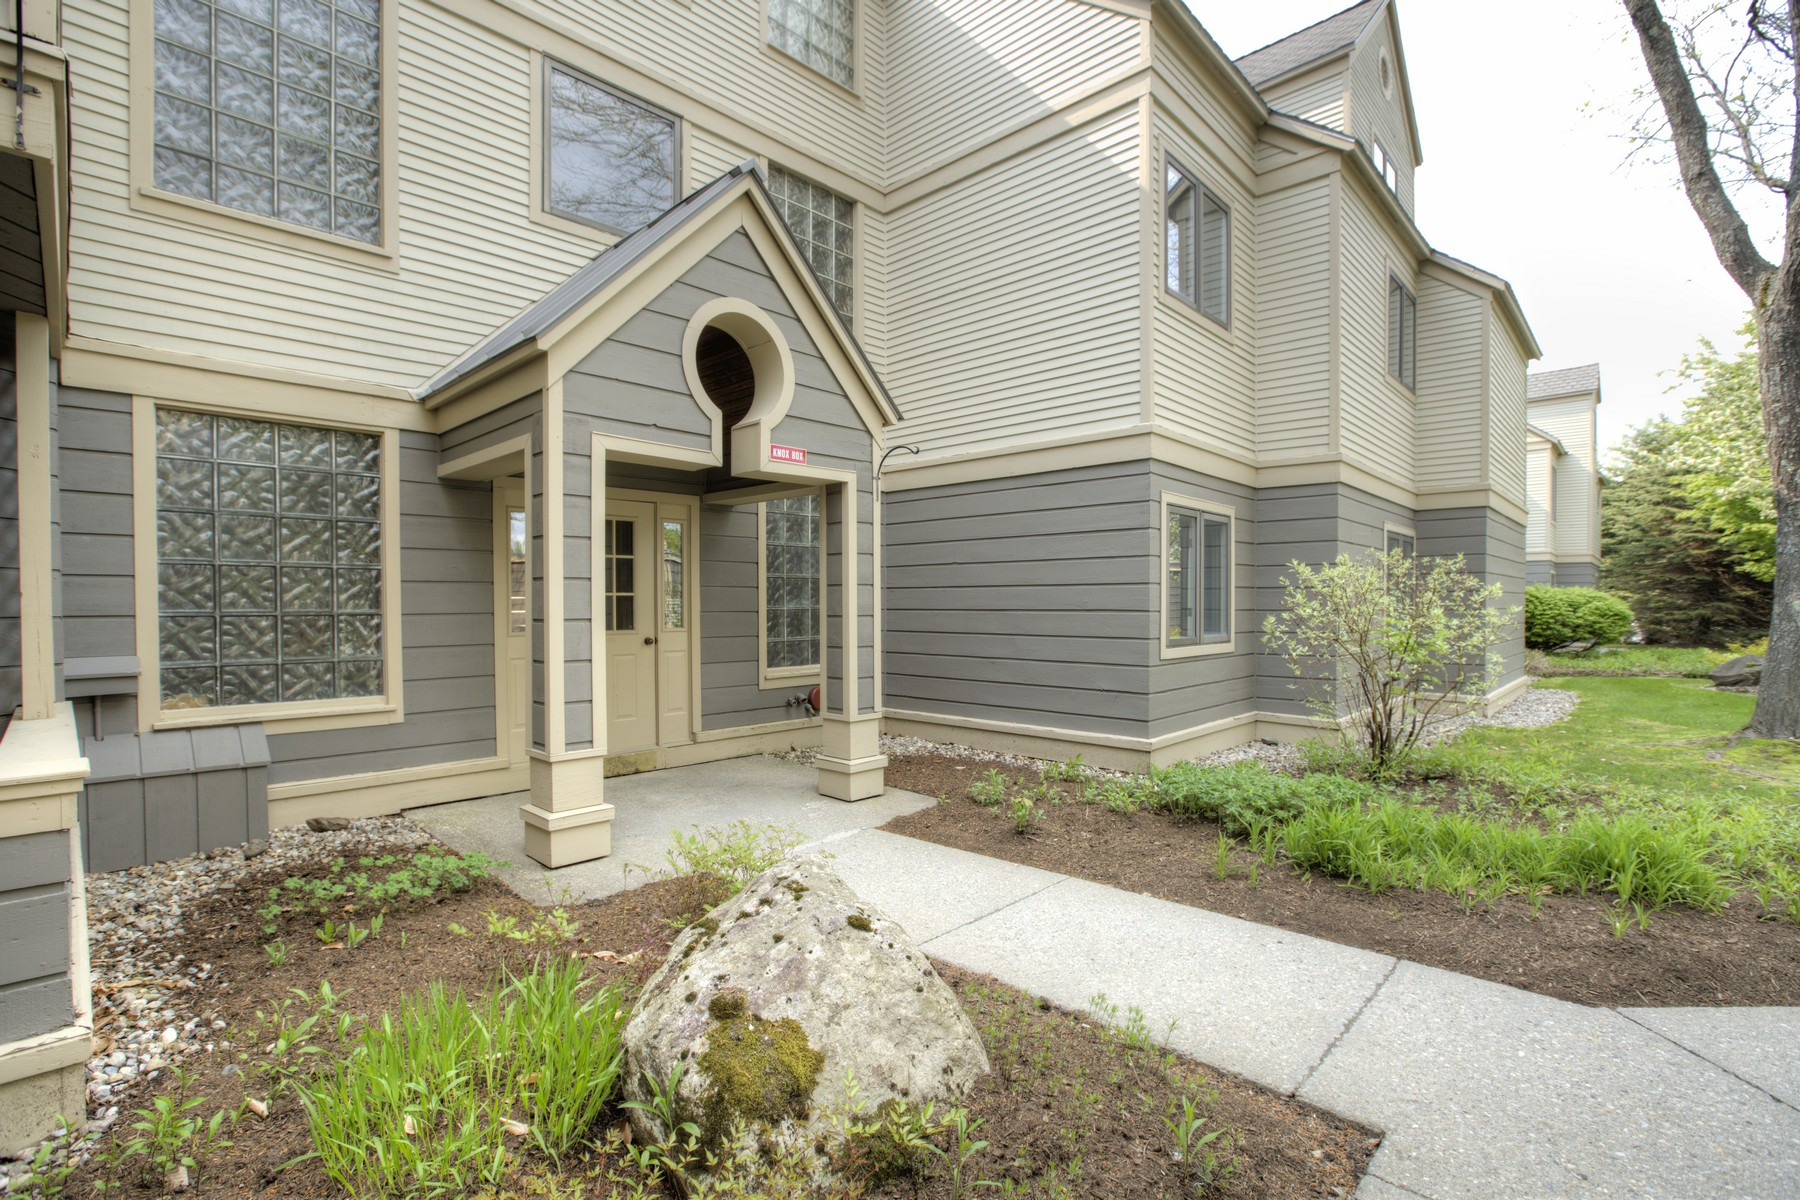 Condominiums for Sale at 49 High Point Drive A13, Stratton 49 High Point Dr A13 Stratton, Vermont 05155 United States